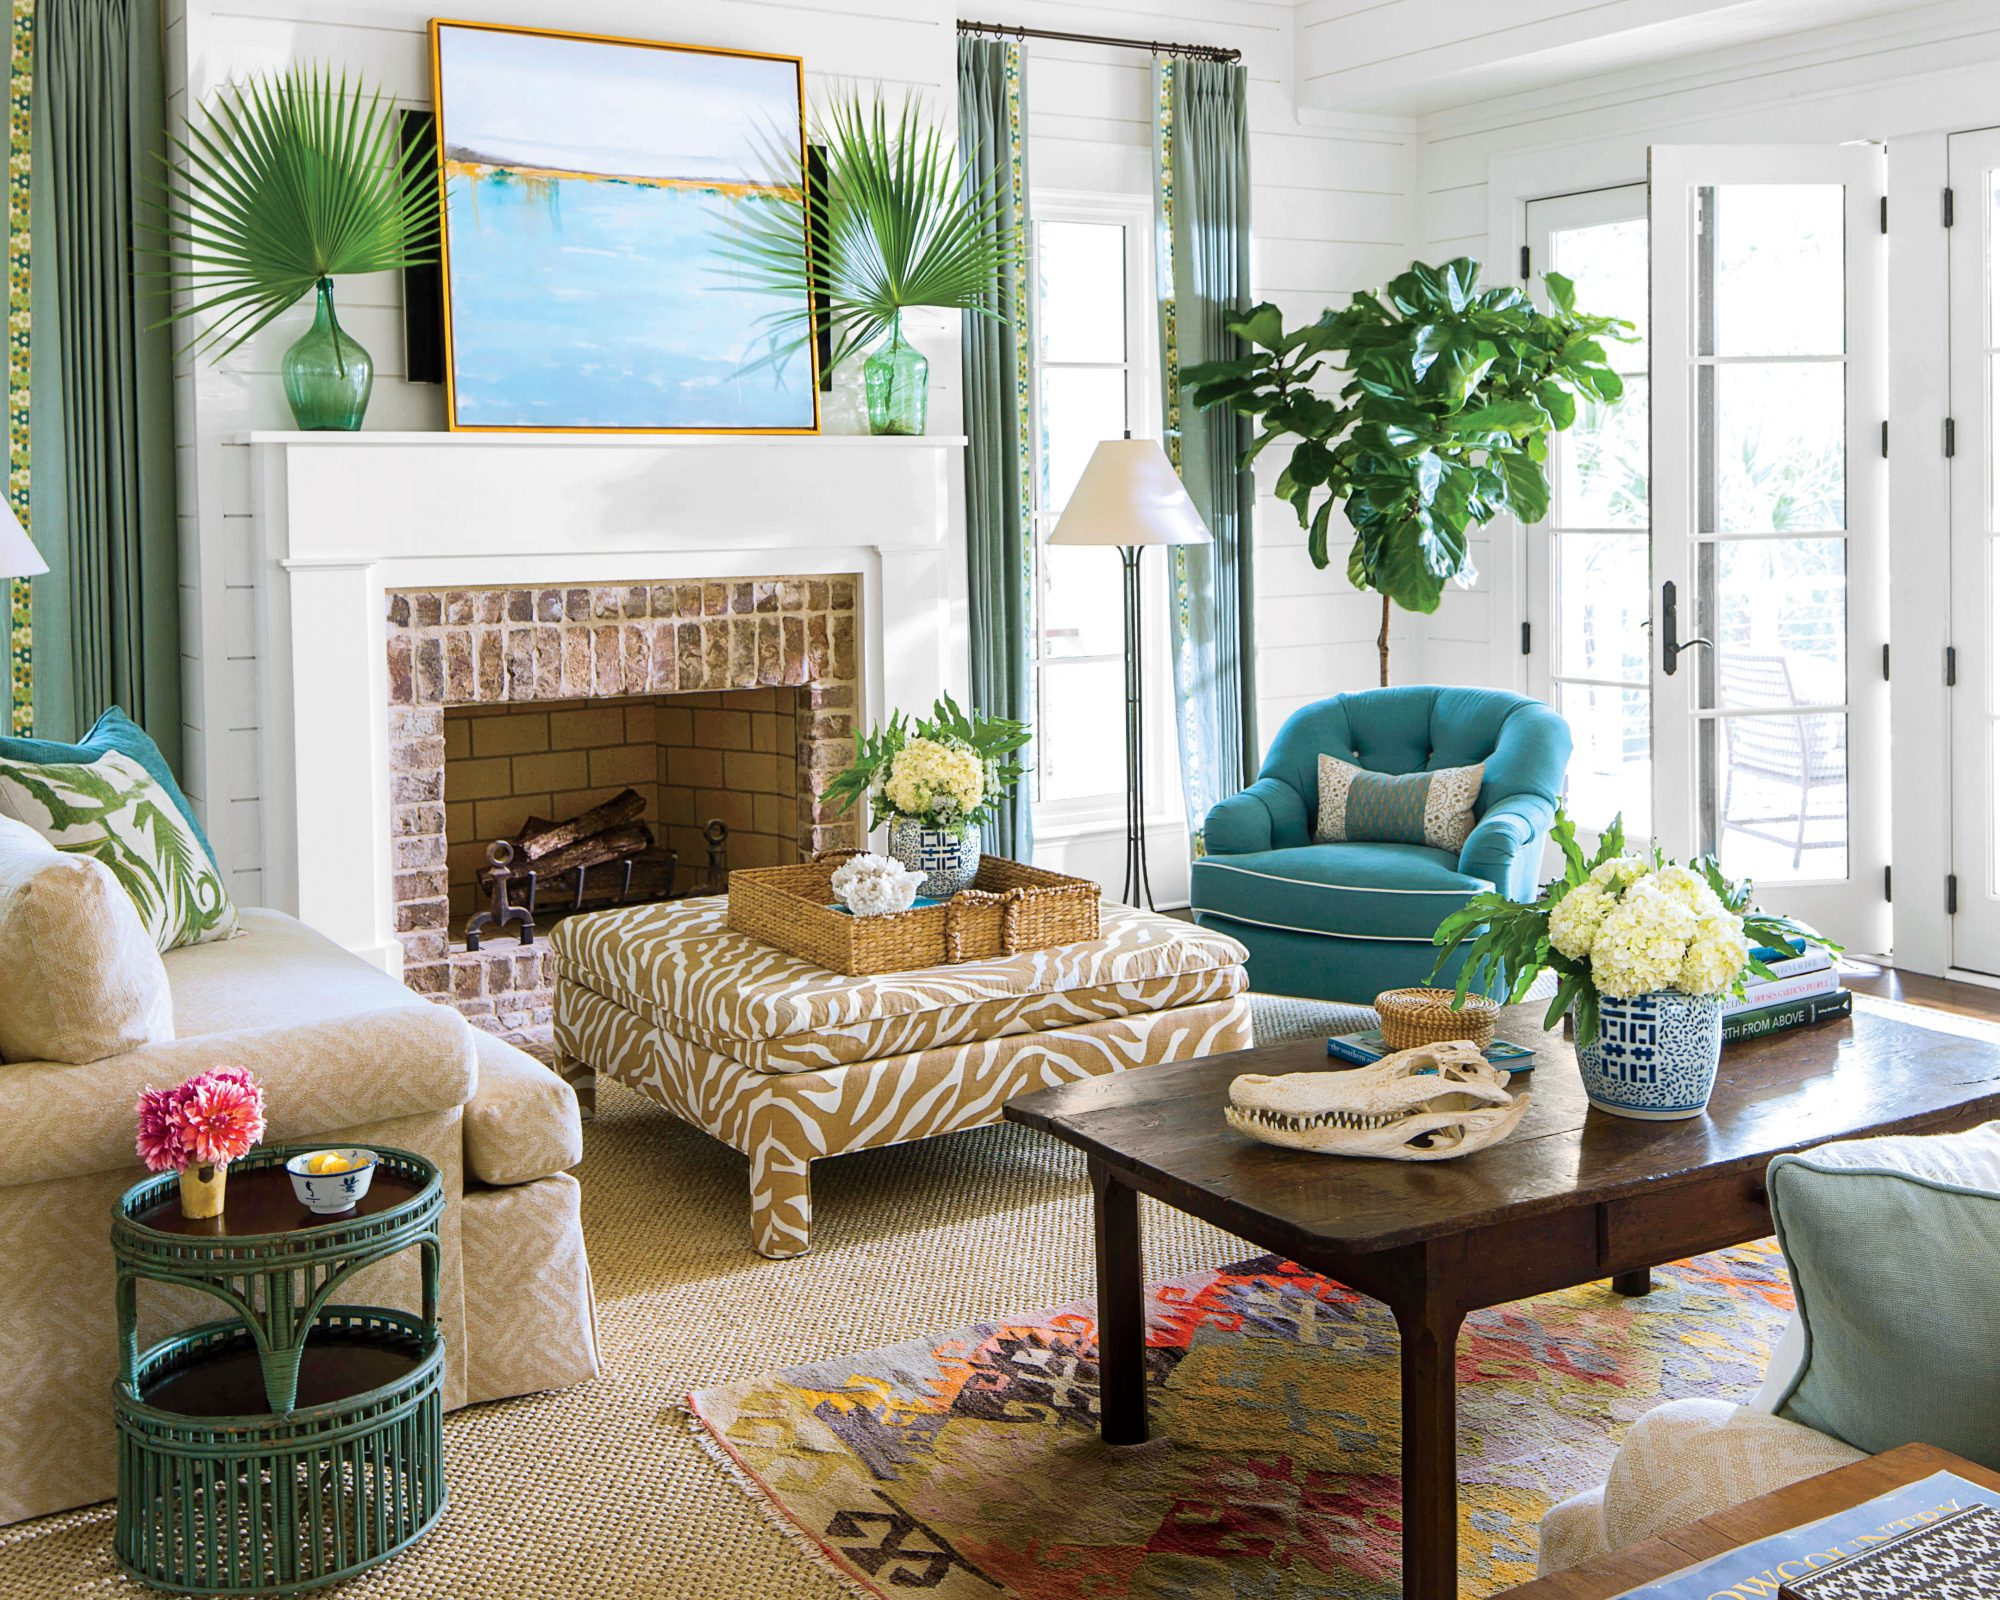 Living Room Ideas Decorating 106 living room decorating ideas - southern living